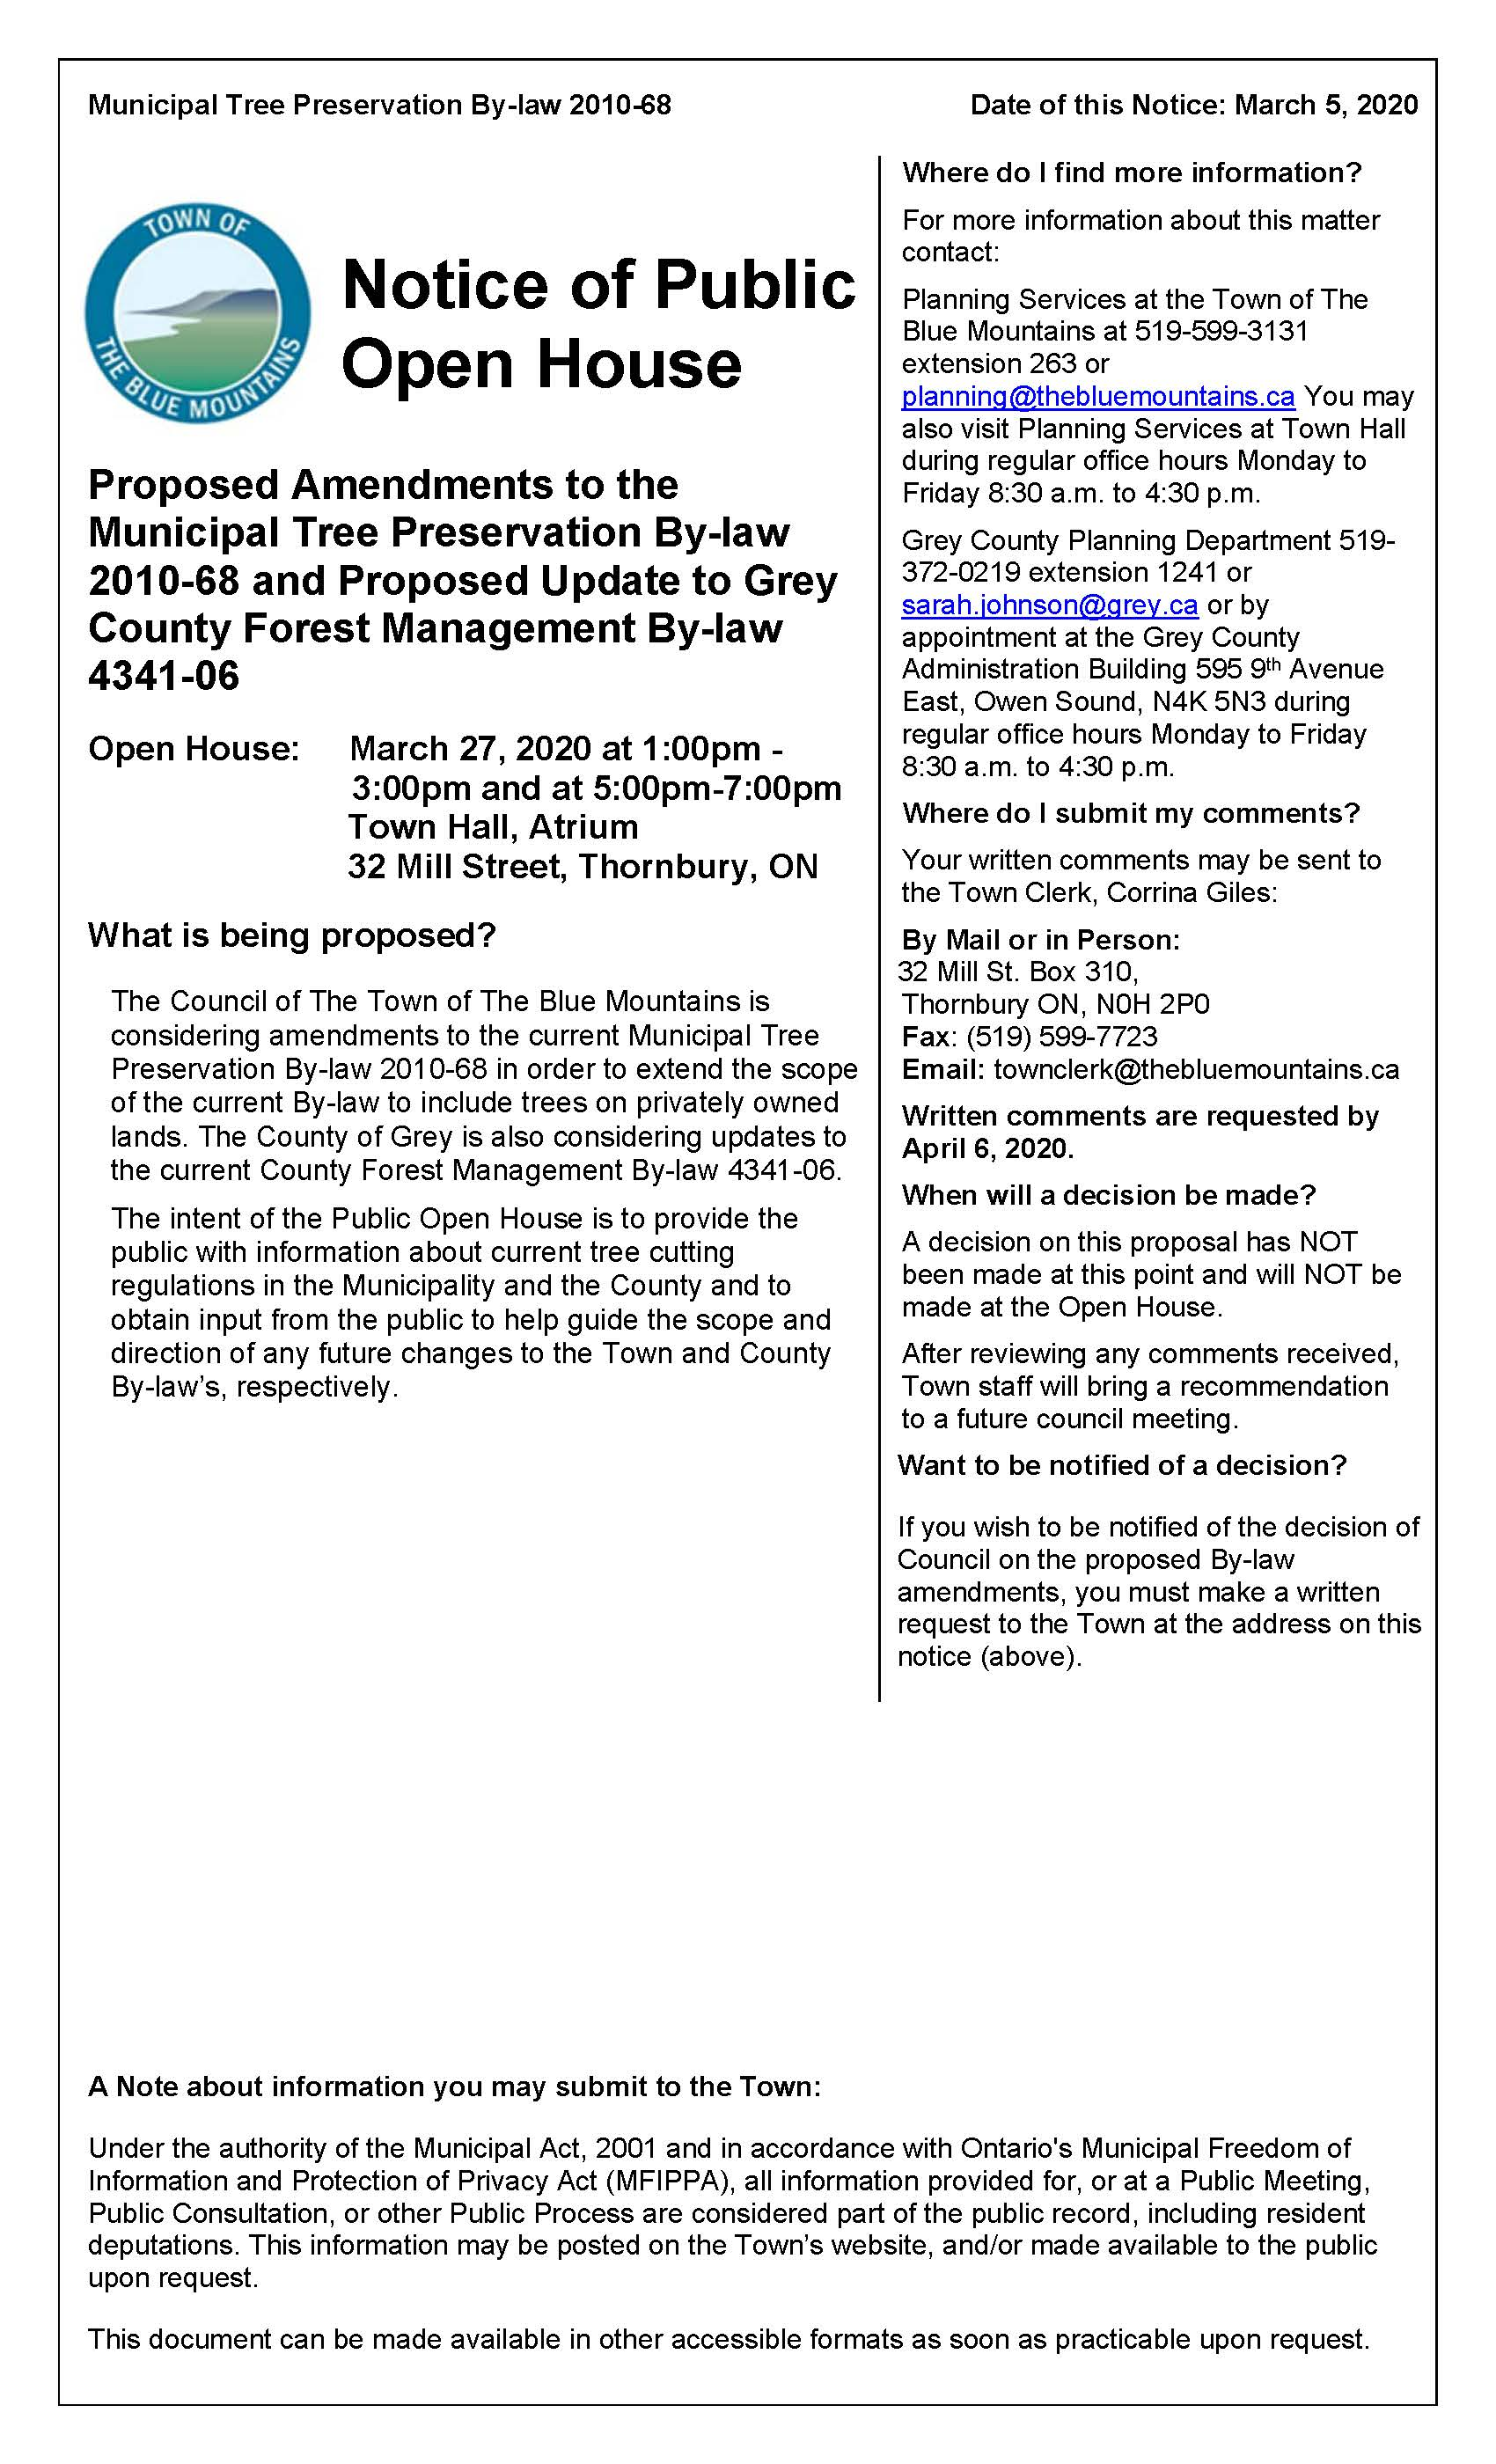 Proposed Amendments to the Municipal Tree Preservation By-law 2010-68